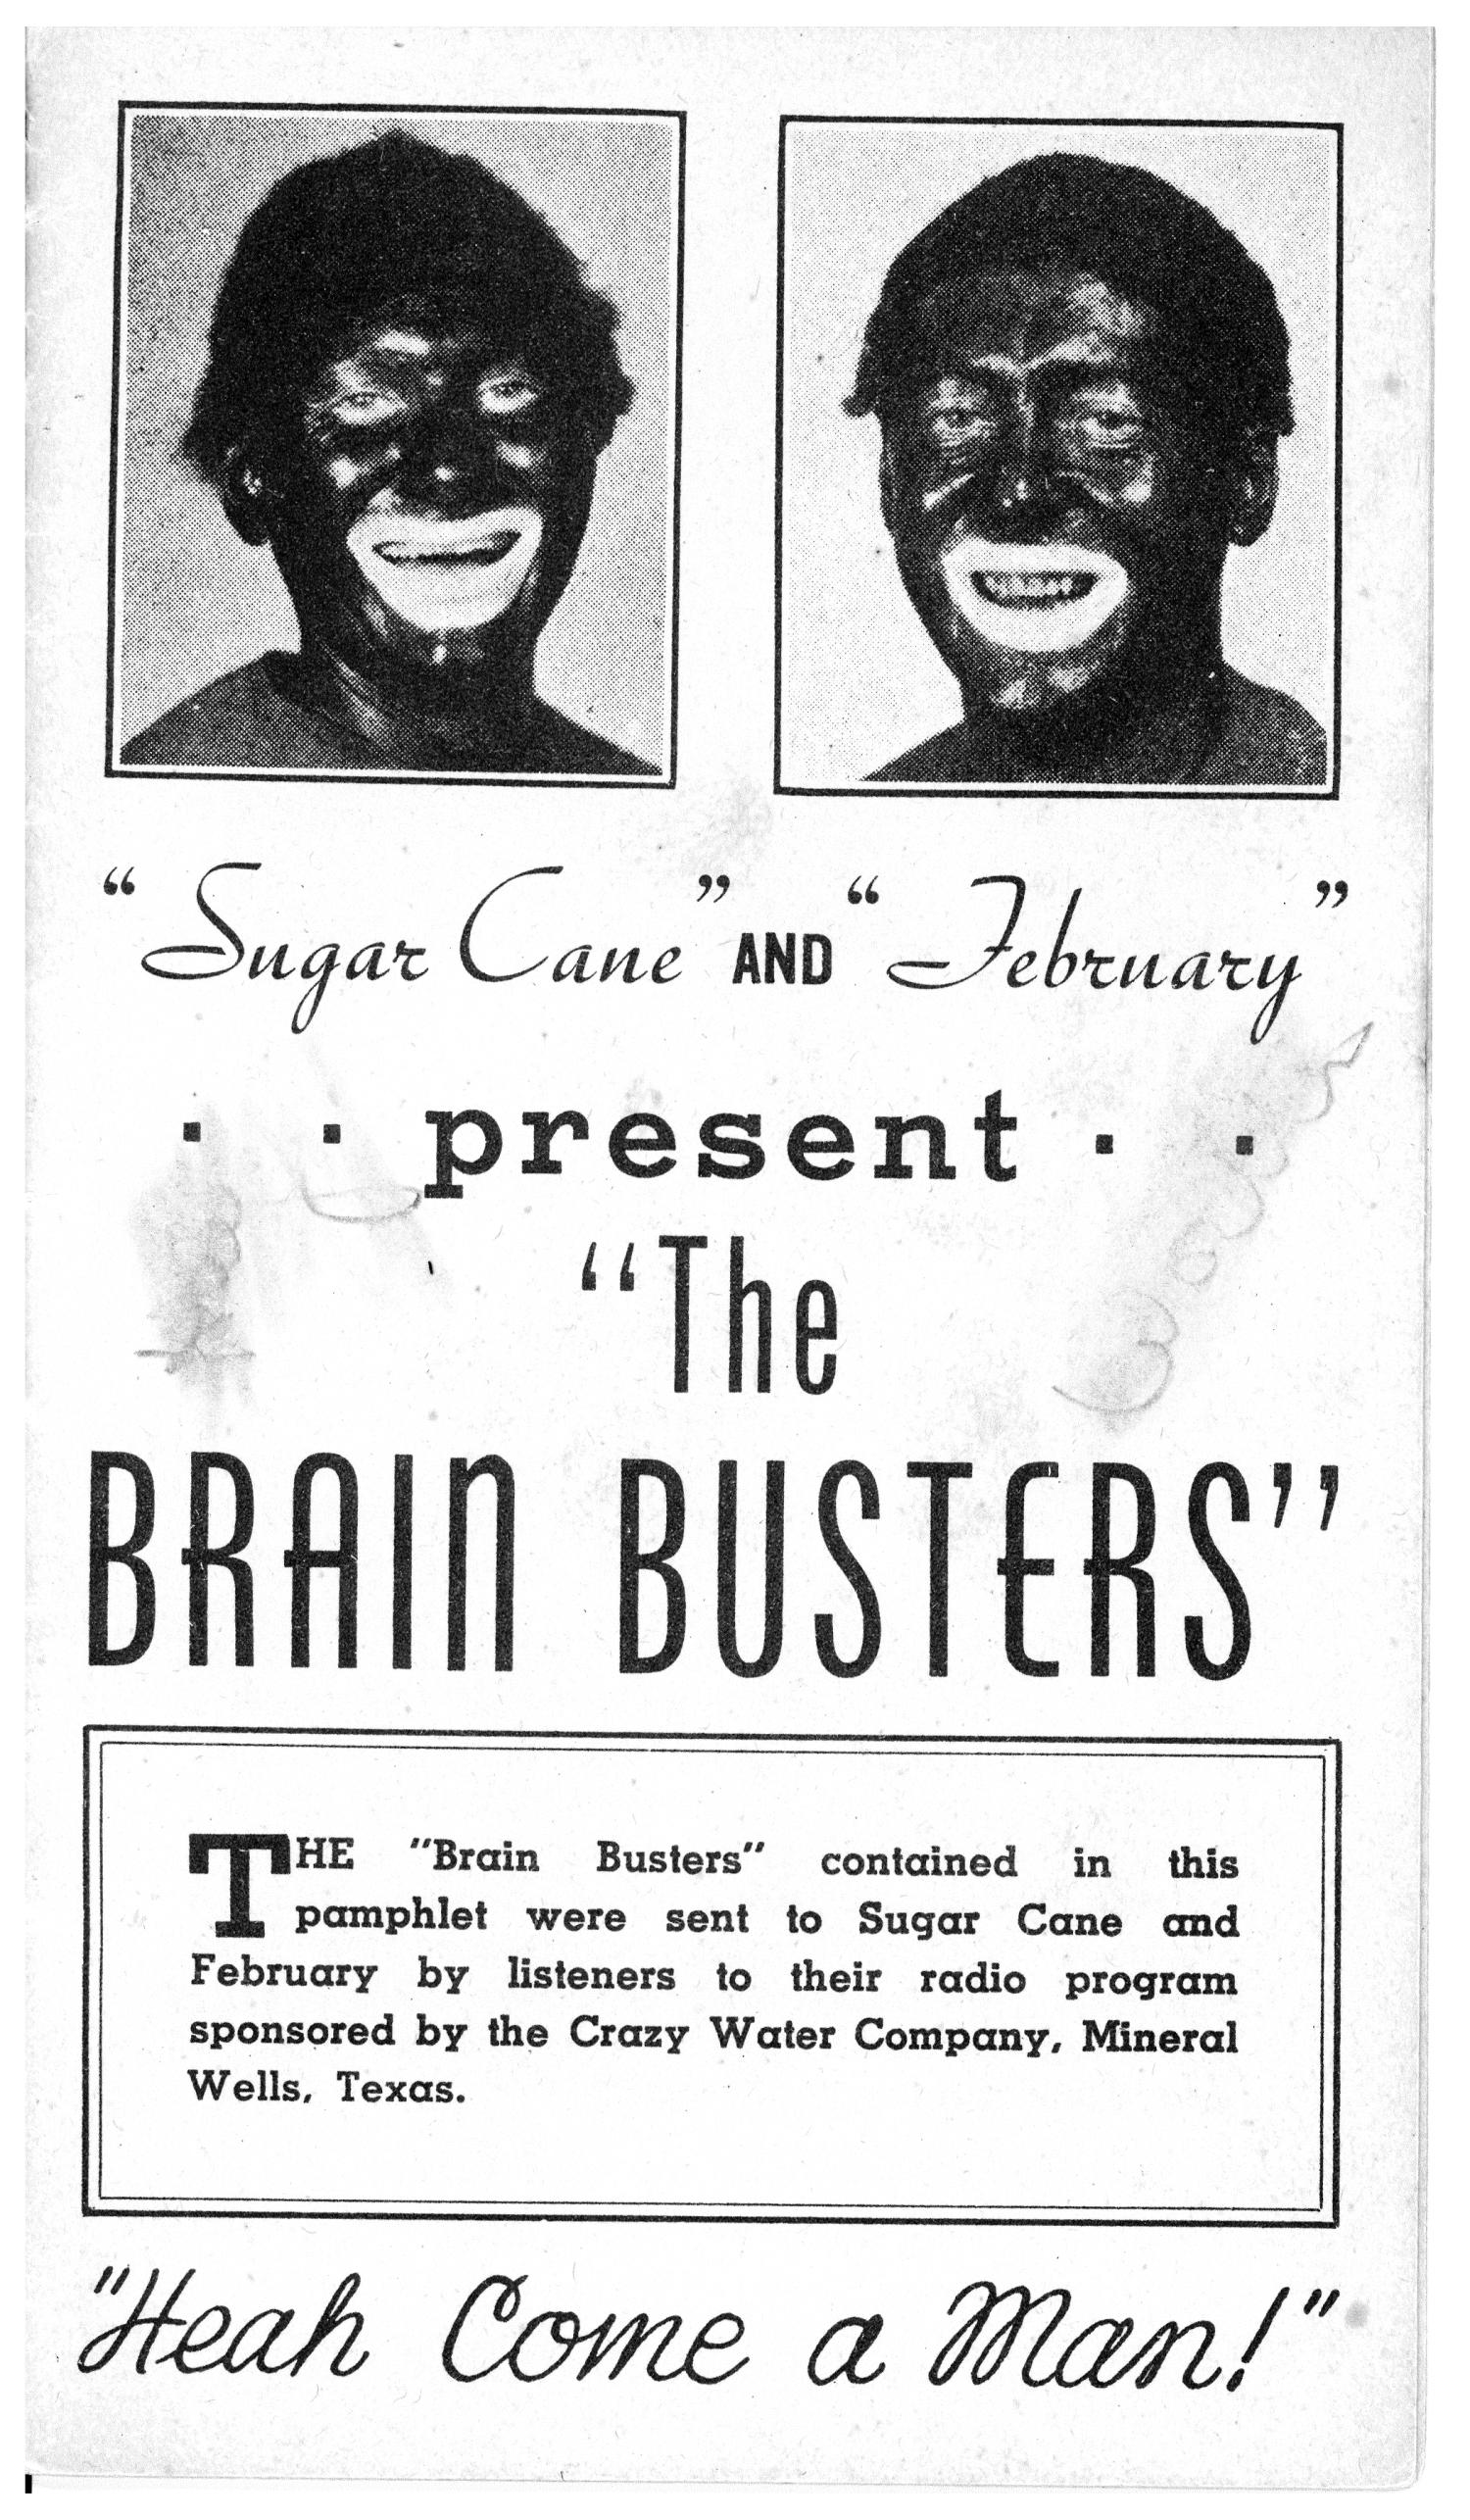 The Brain Busters                                                                                                      1